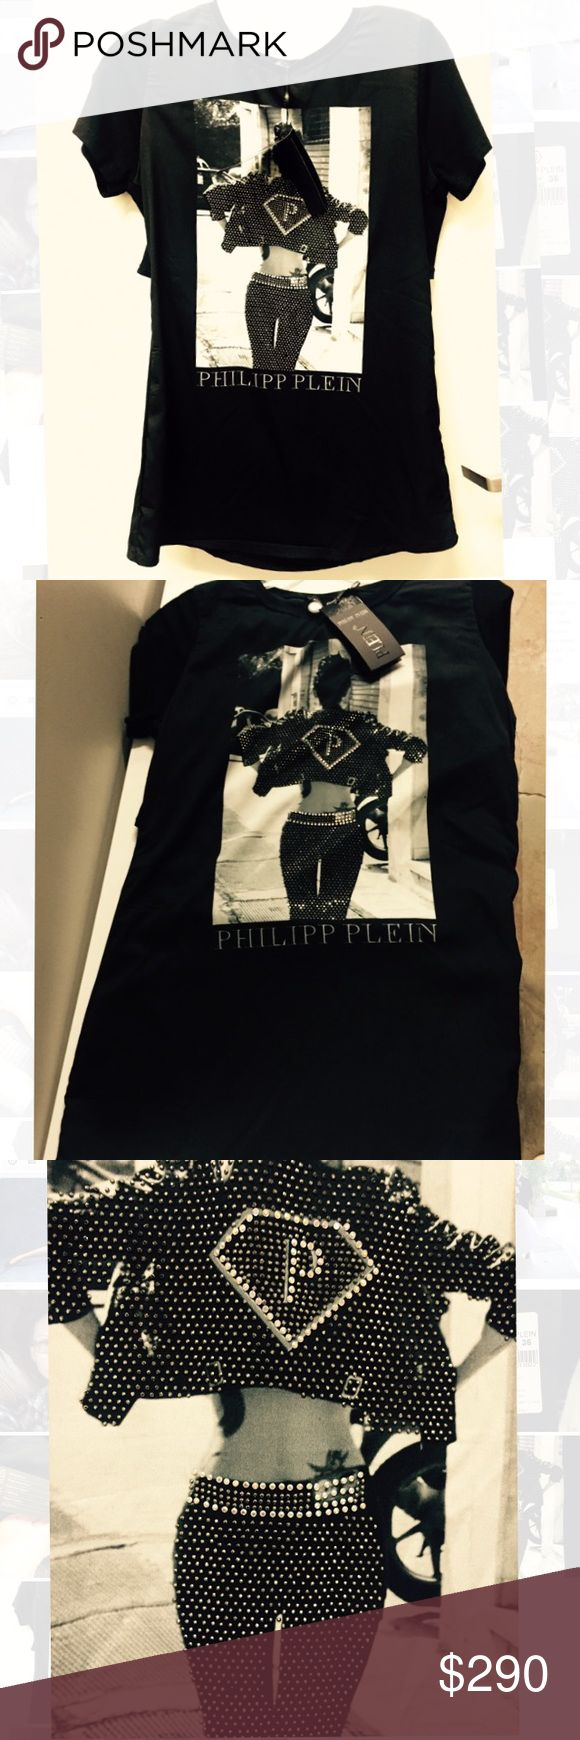 Authentic Philipp Plein bluse-T shirt Absolutely gorgeous!New with tag,Applique made of Swarovski crystals.european size 36 - S size . Made in Italy. Philipp Plein Tops Blouses